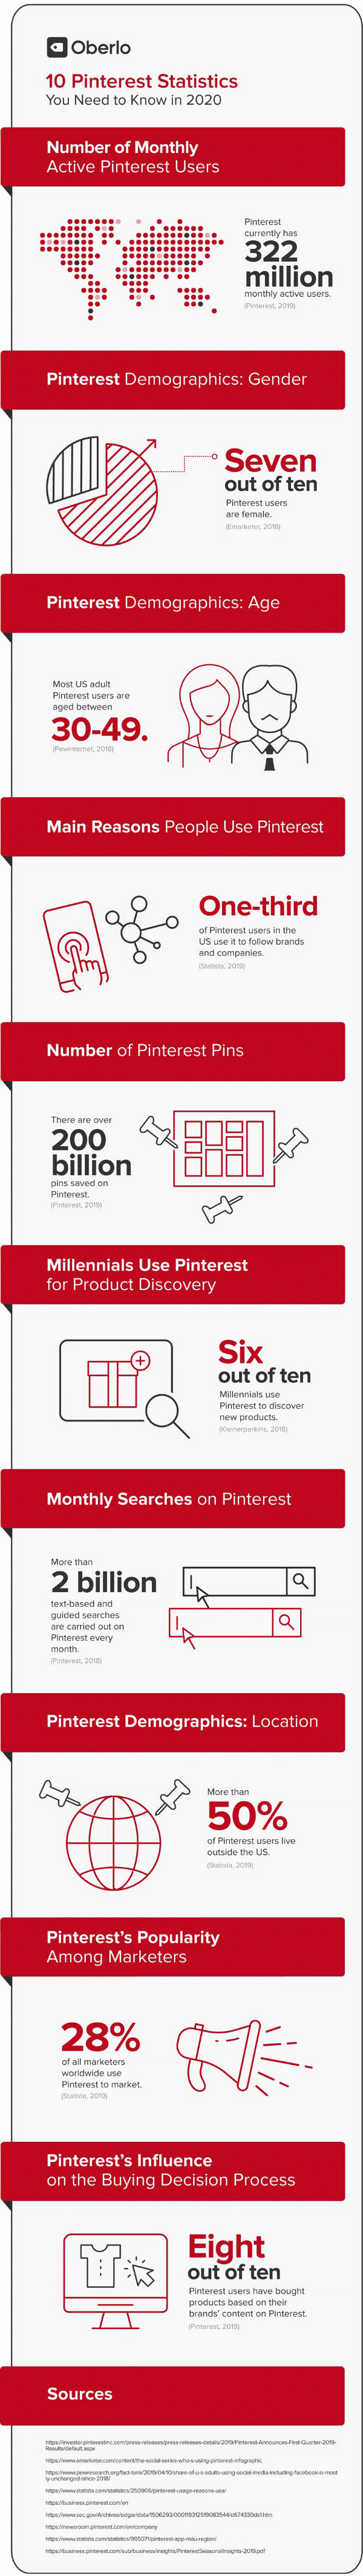 Learn more about the wonderful world of Pinterest with these additional statistics, in this amazing infographic!